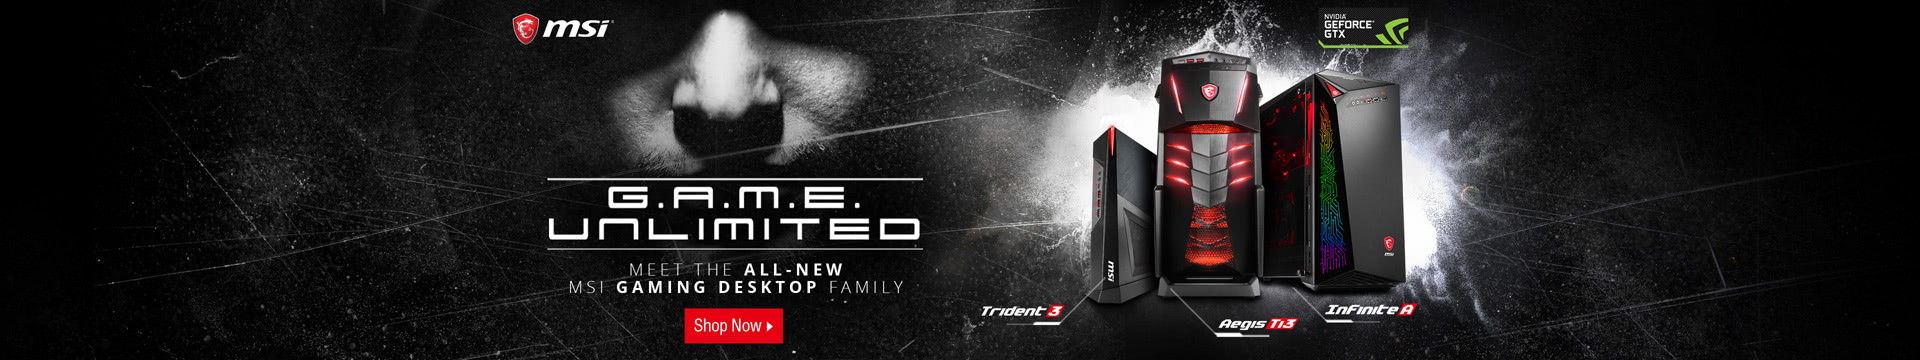 MEET THE ALL NEW MSI GAMING DESKTOP FAMILY